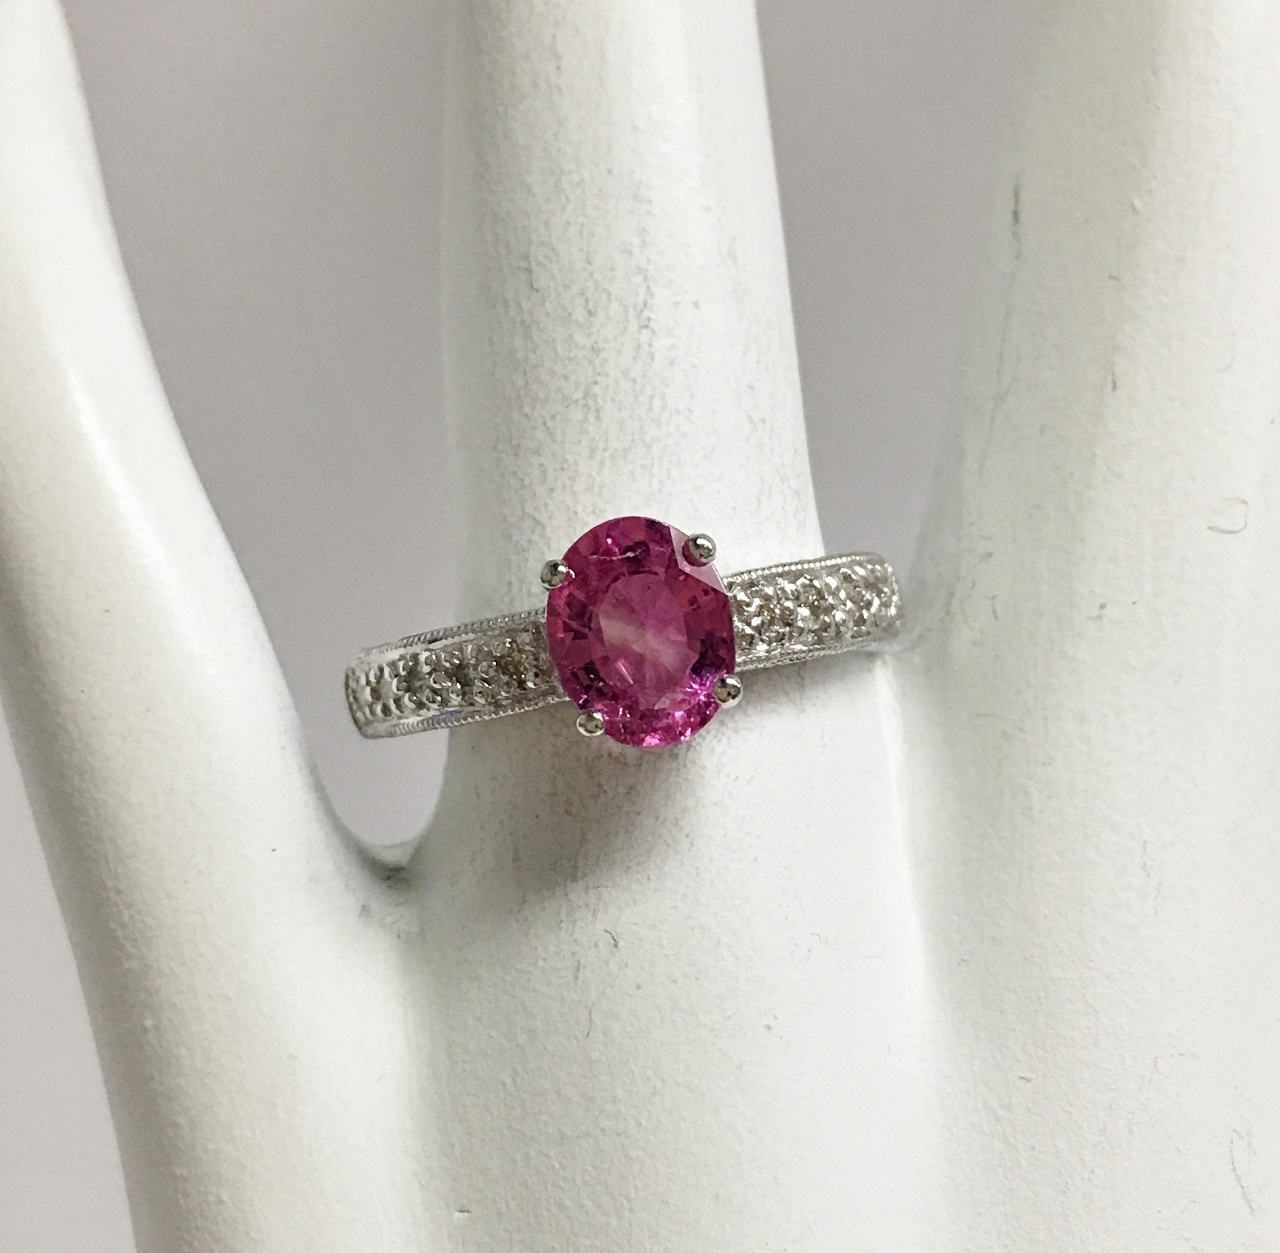 1.50 Carats Pink Sapphire Ring